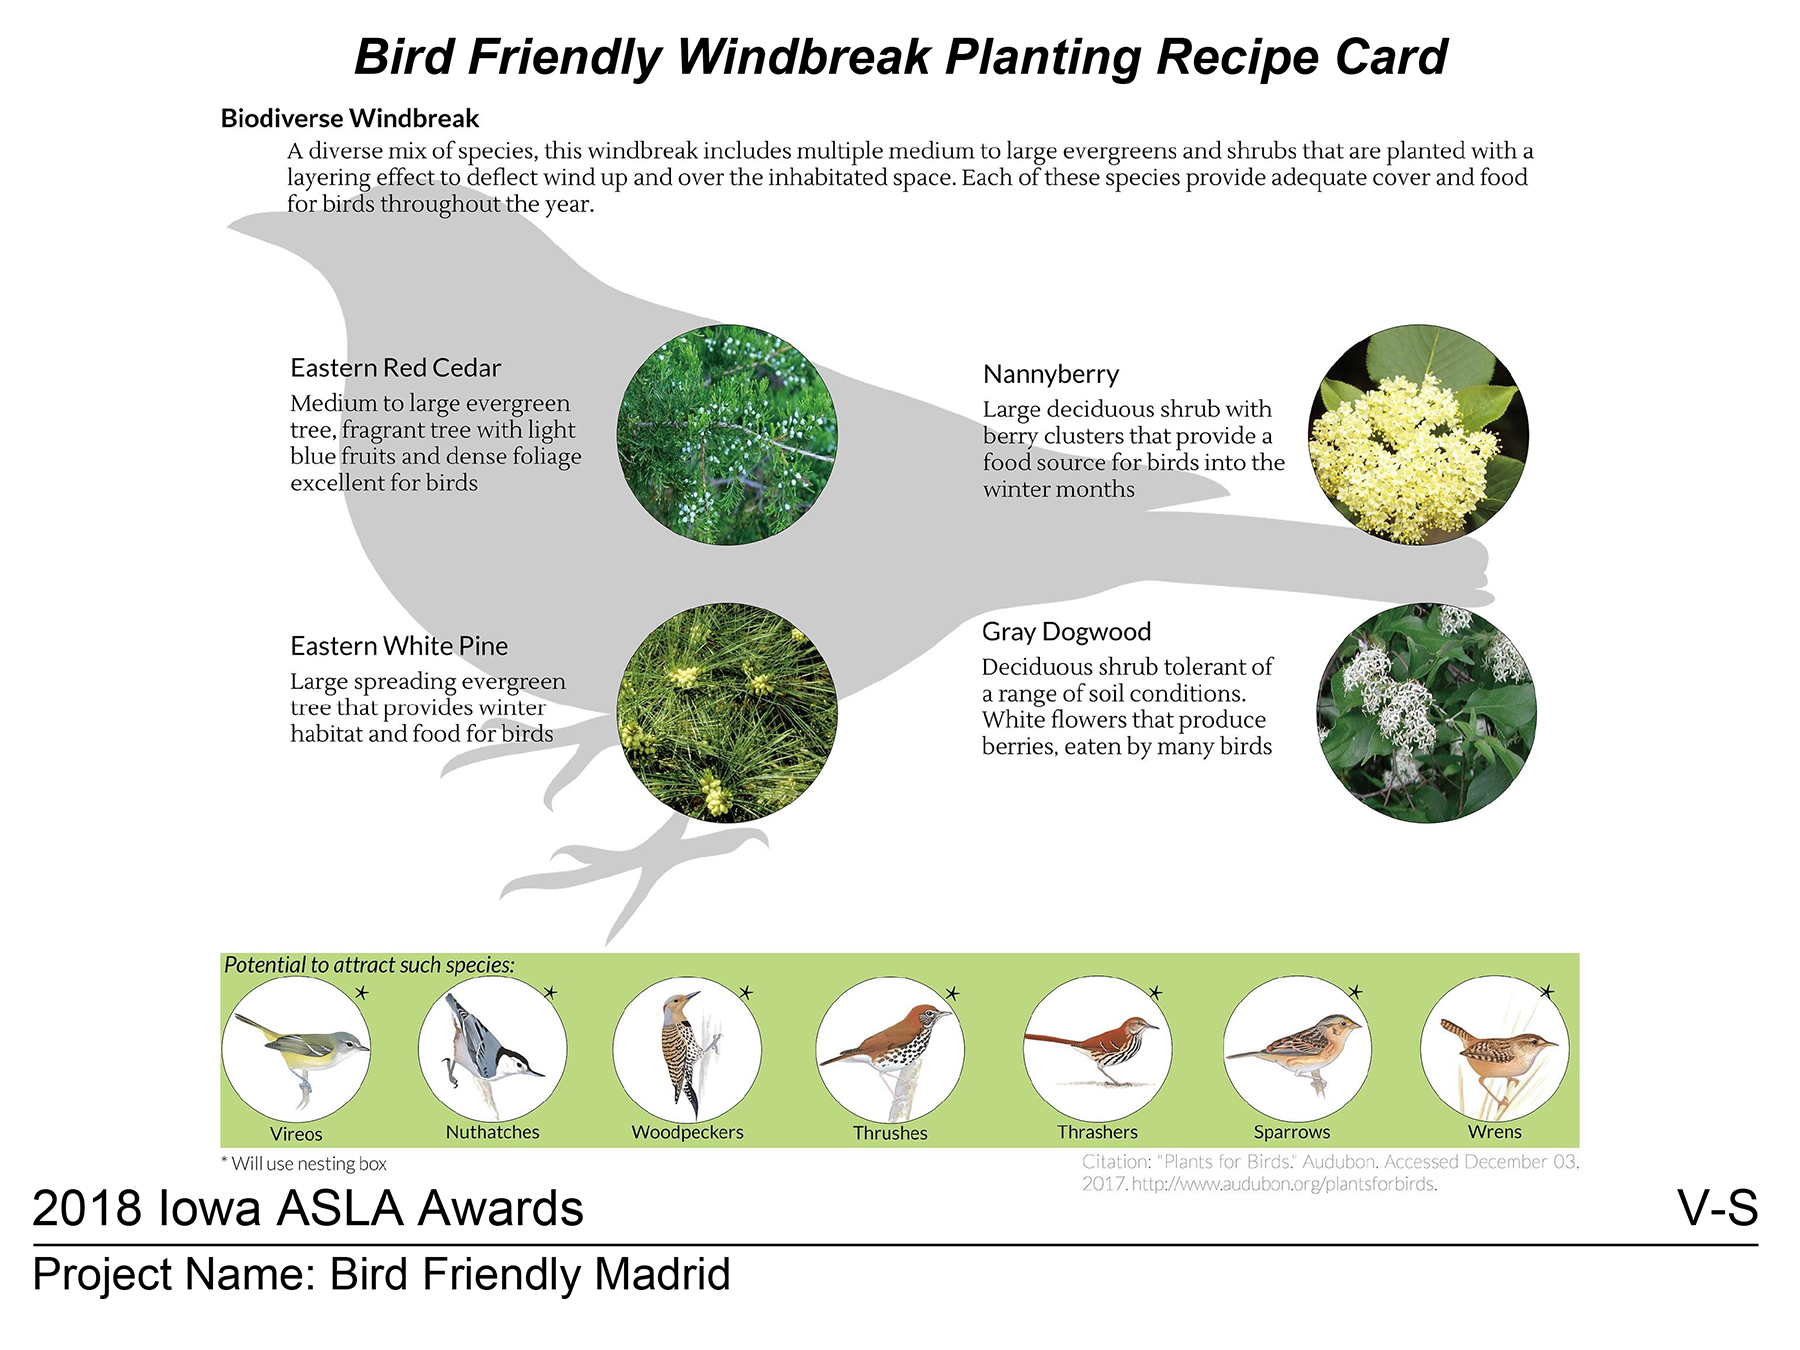 Bird Friendly Madrid Windbreak Recipe Card